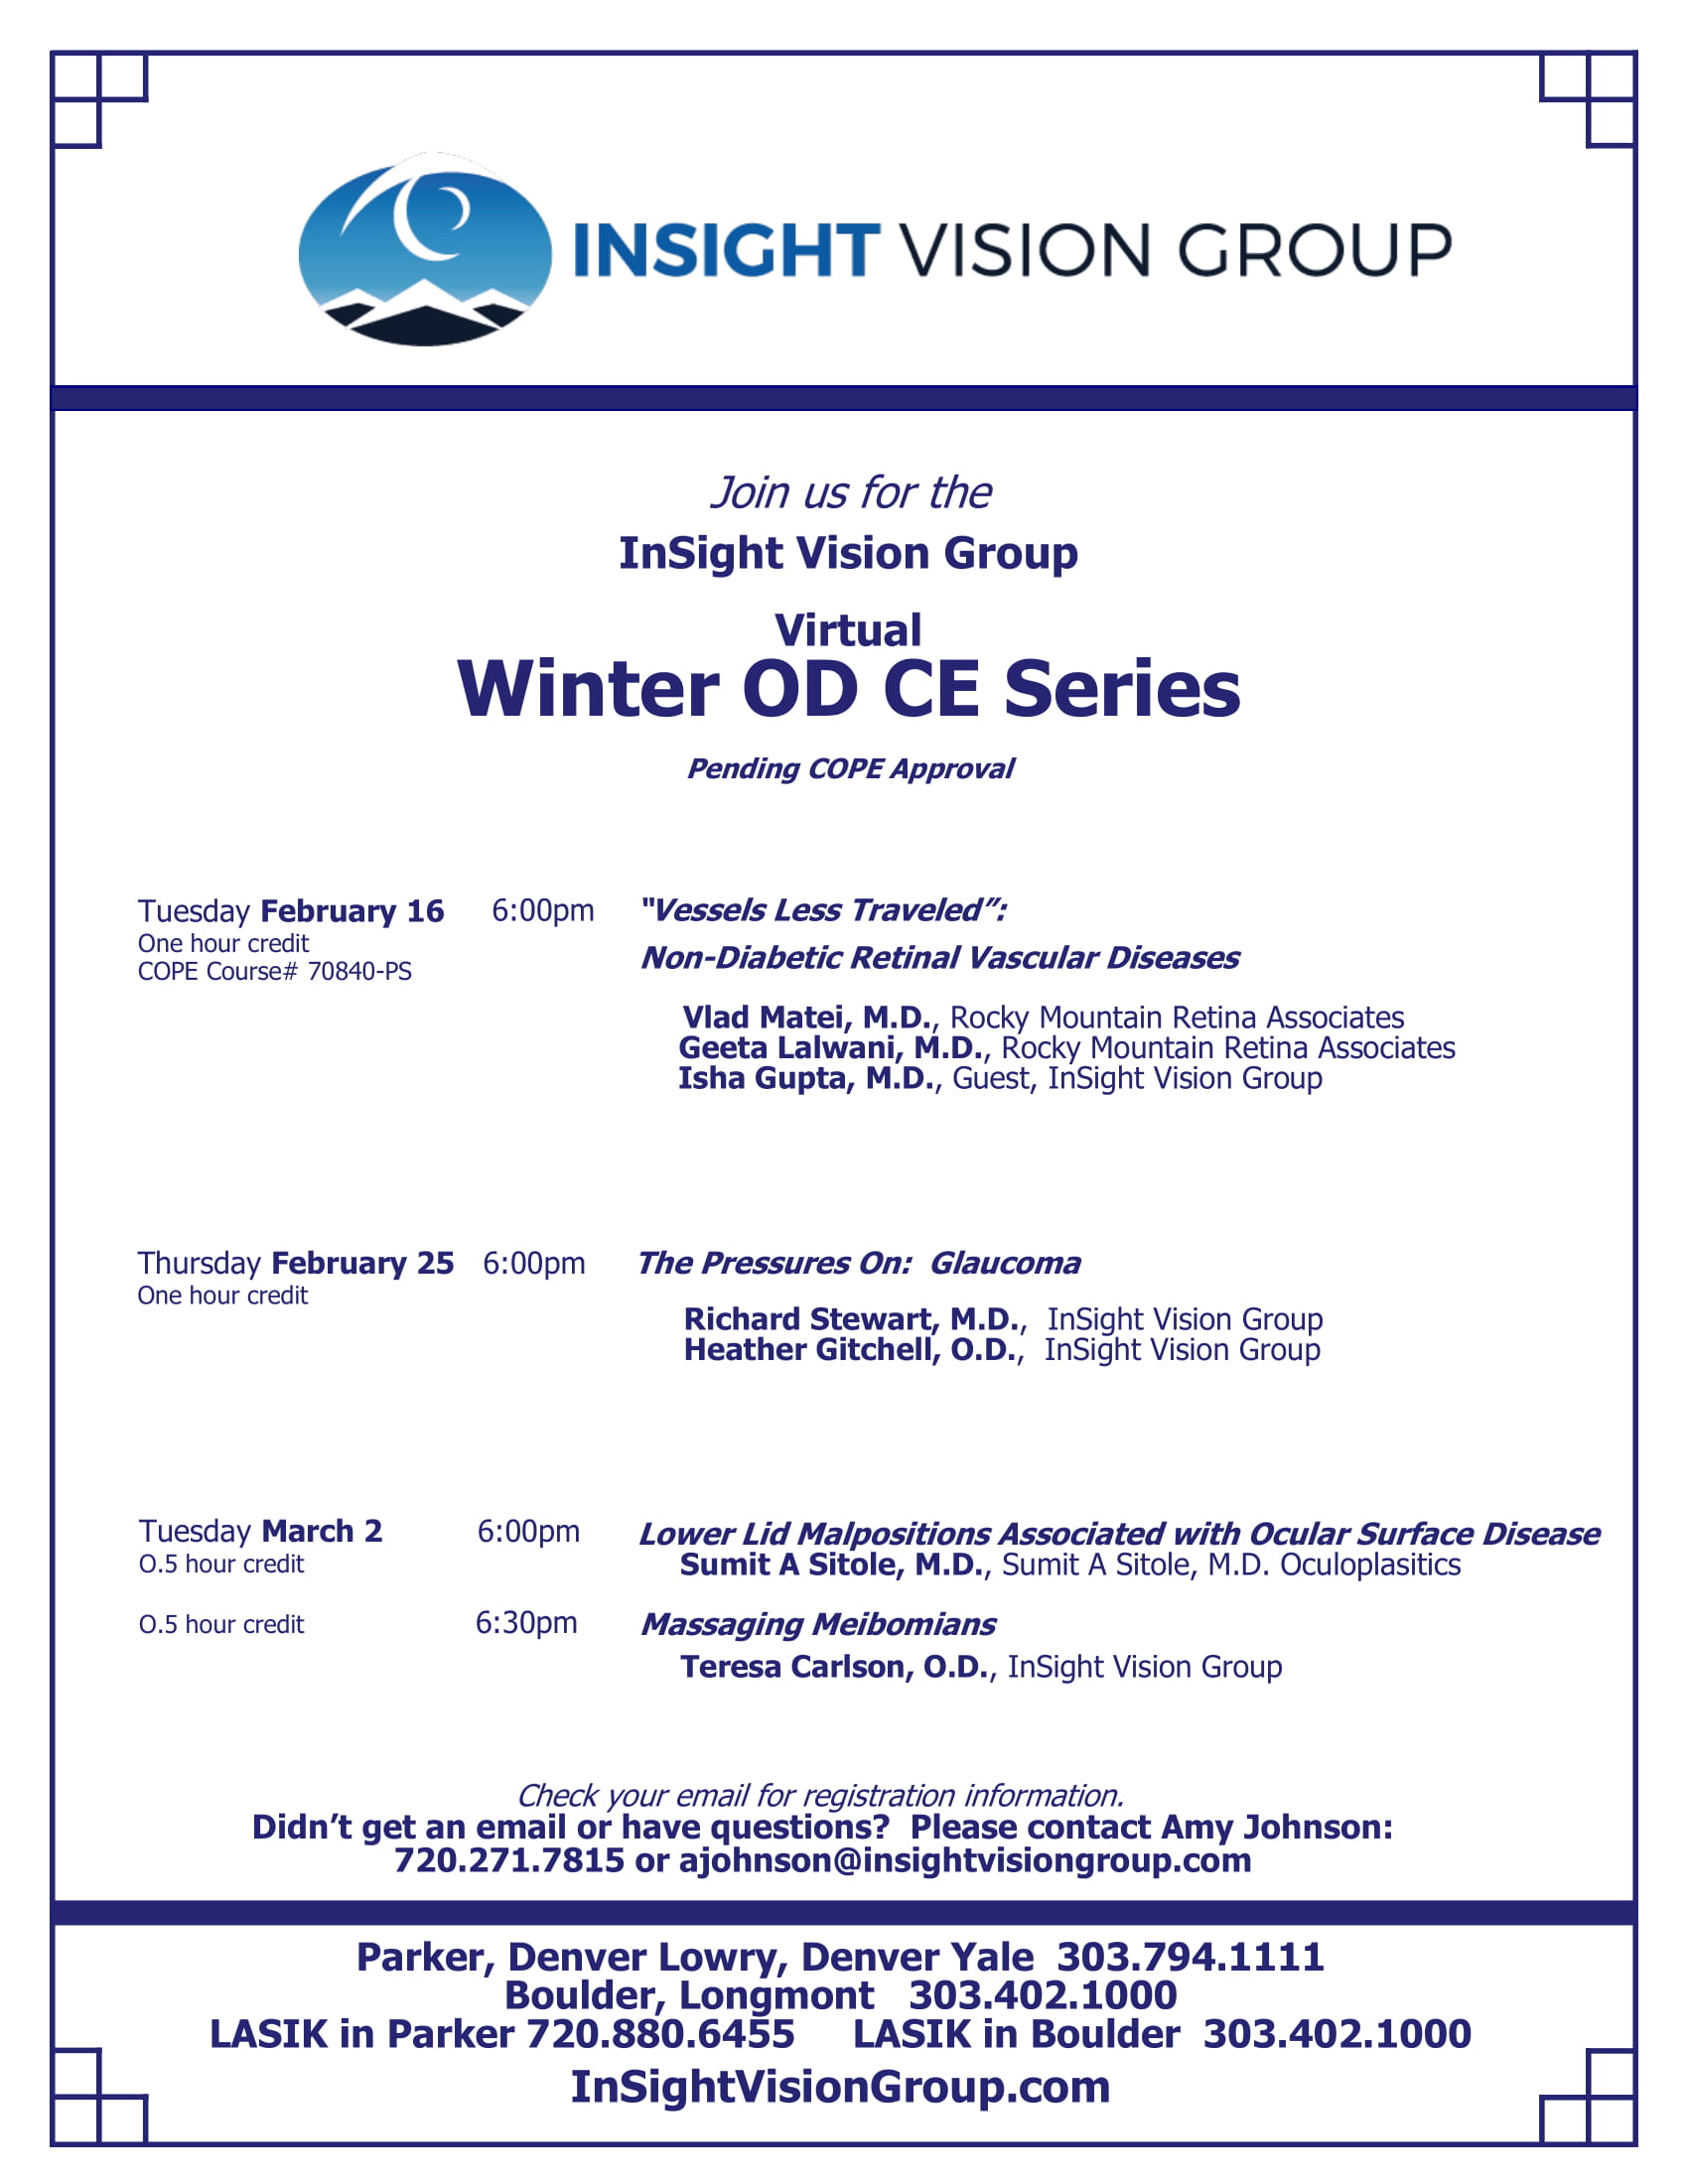 2021 Winter OD CE Series